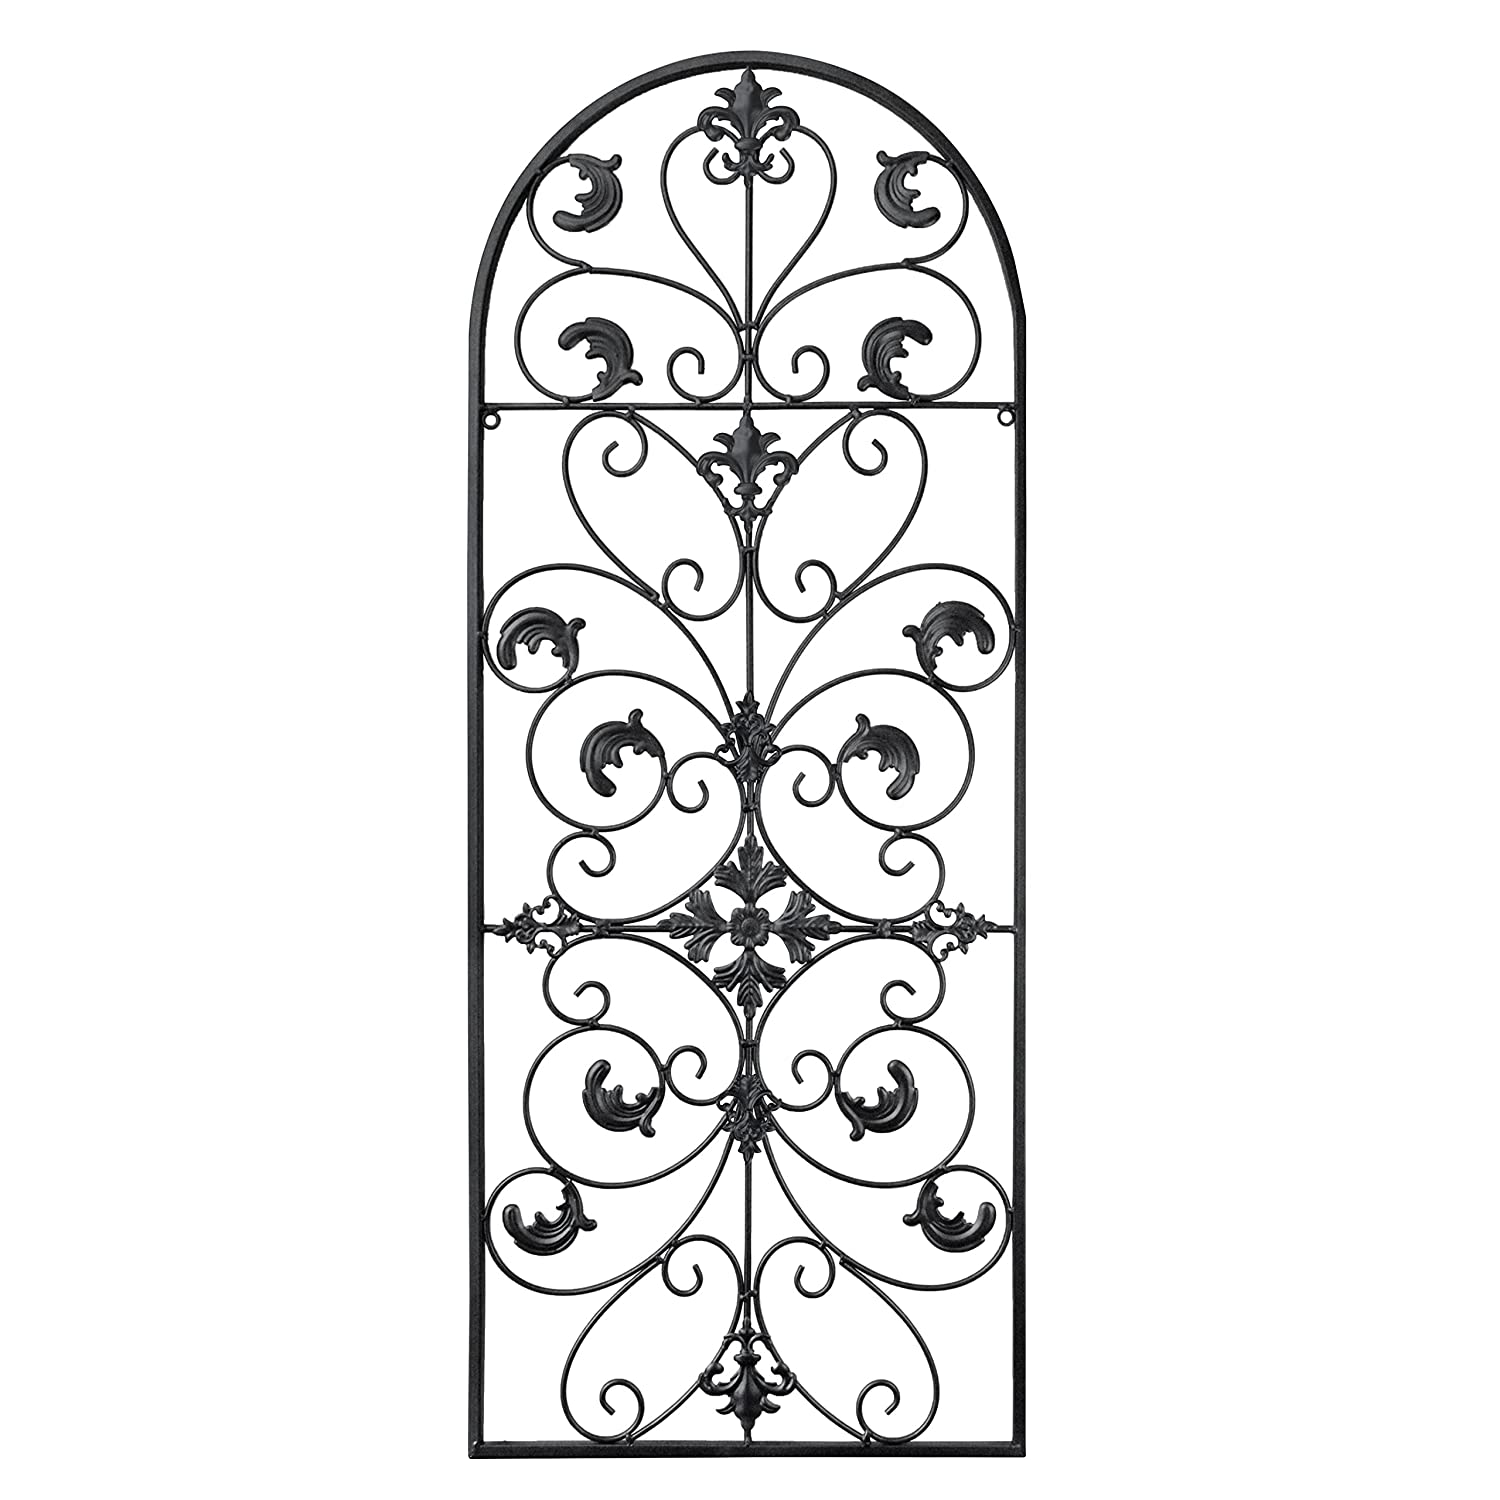 GB HOME COLLECTION gbHome GH-6777 Metal Wall Decor, Decorative Victorian Style Hanging Art, Steel Décor, Window Arch Design, 16.5 x 41.5 Inches, Black